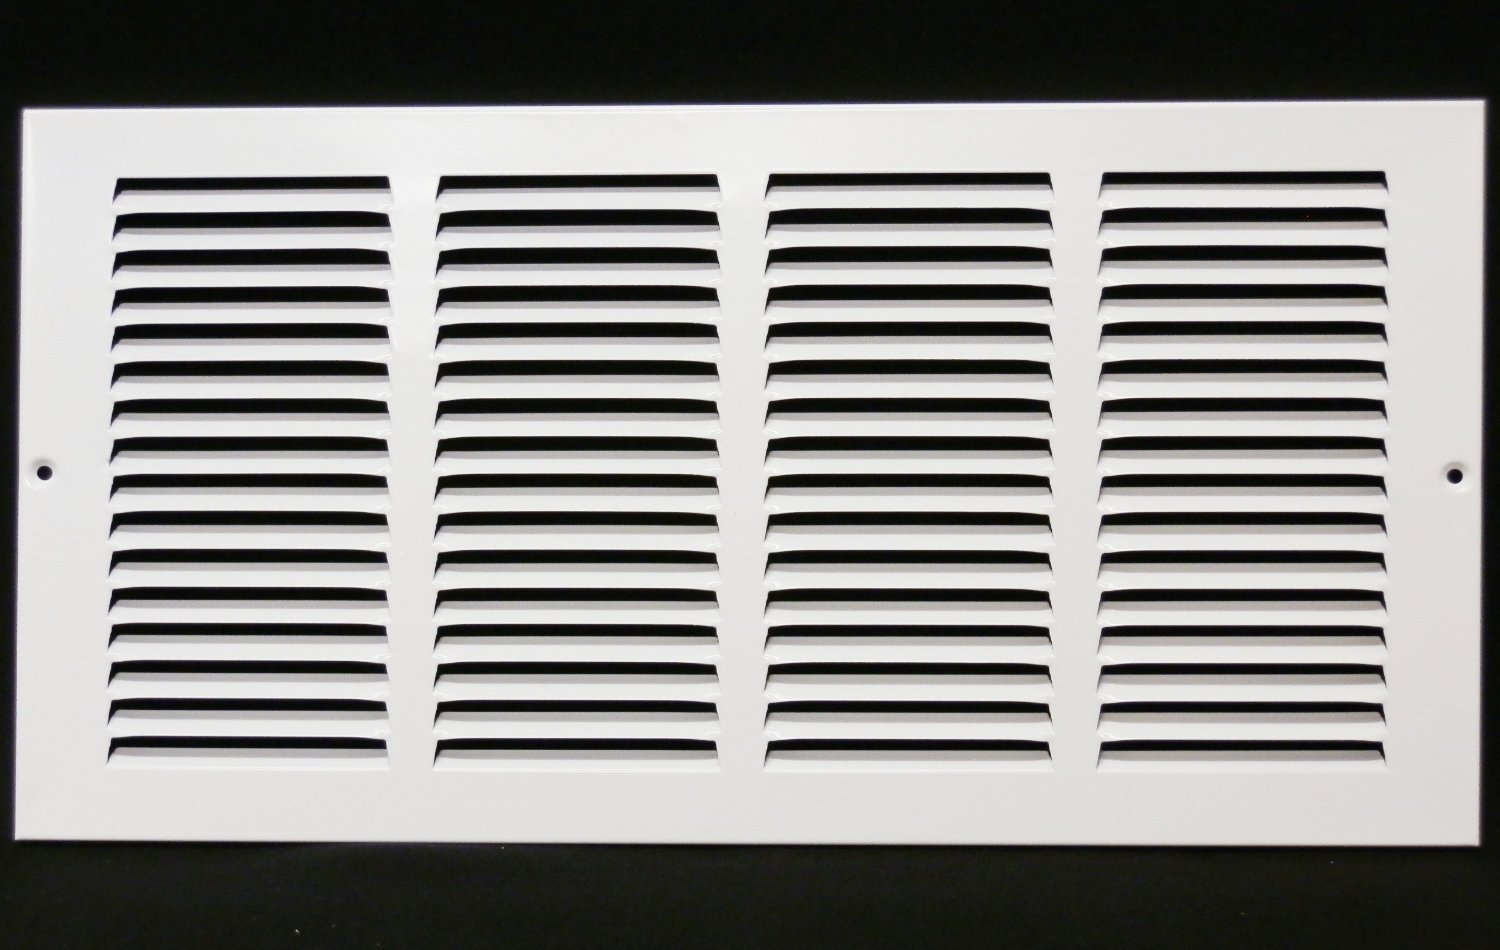 16''w X 6''h Steel Return Air Grilles - Sidewall and Cieling - HVAC DUCT COVER - White [Outer Dimensions: 17.75''w X 7.75''h]